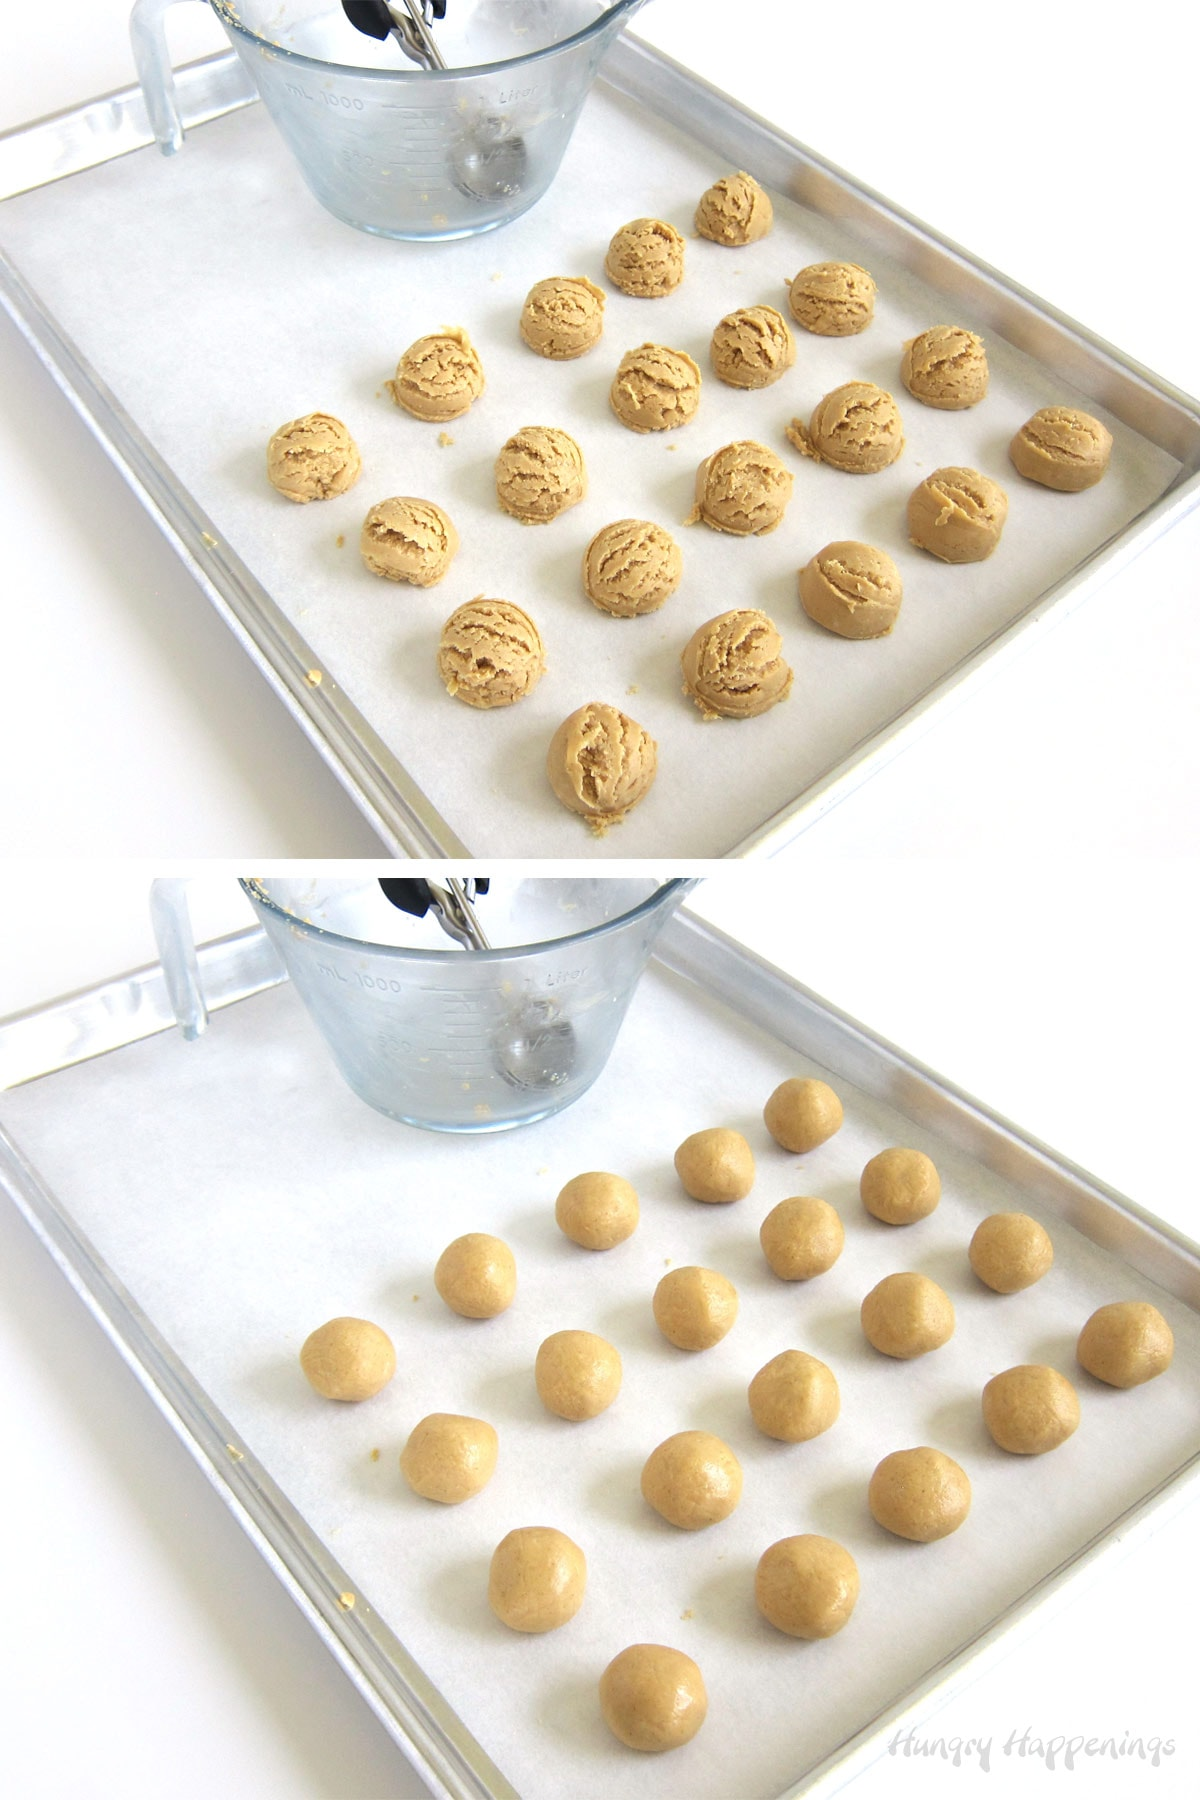 Scoop and roll peanut butter balls.